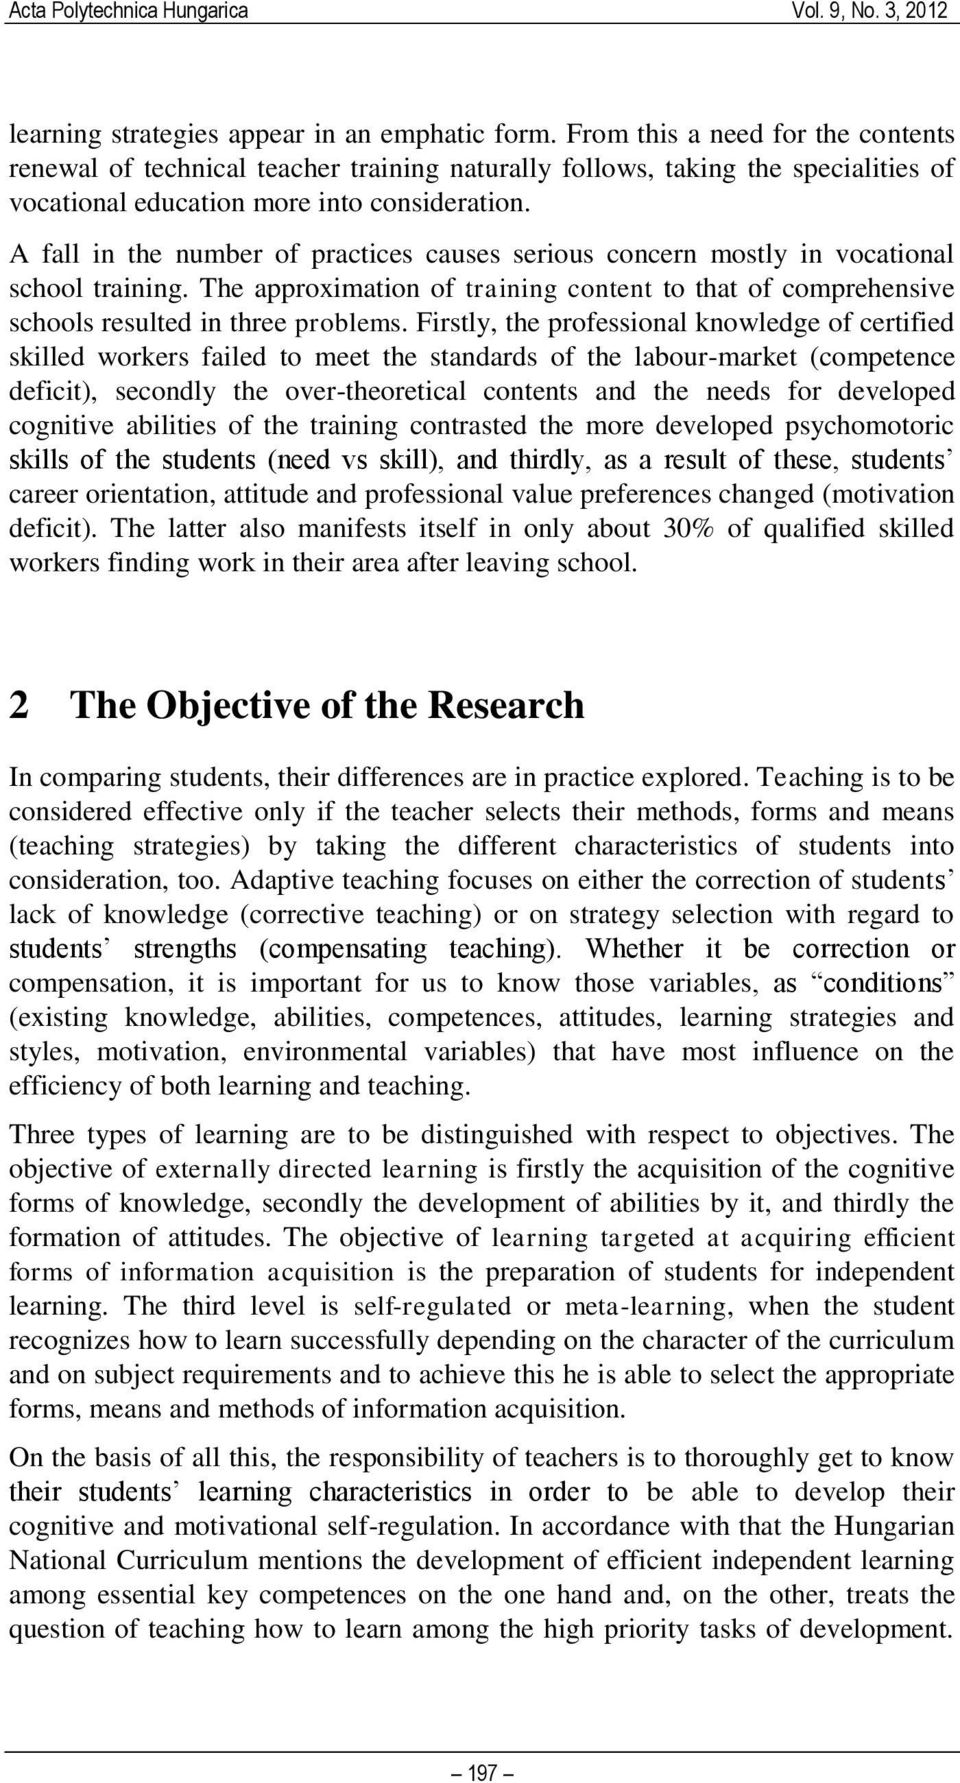 A fall in the number of practices causes serious concern mostly in vocational school training. The approximation of training content to that of comprehensive schools resulted in three problems.